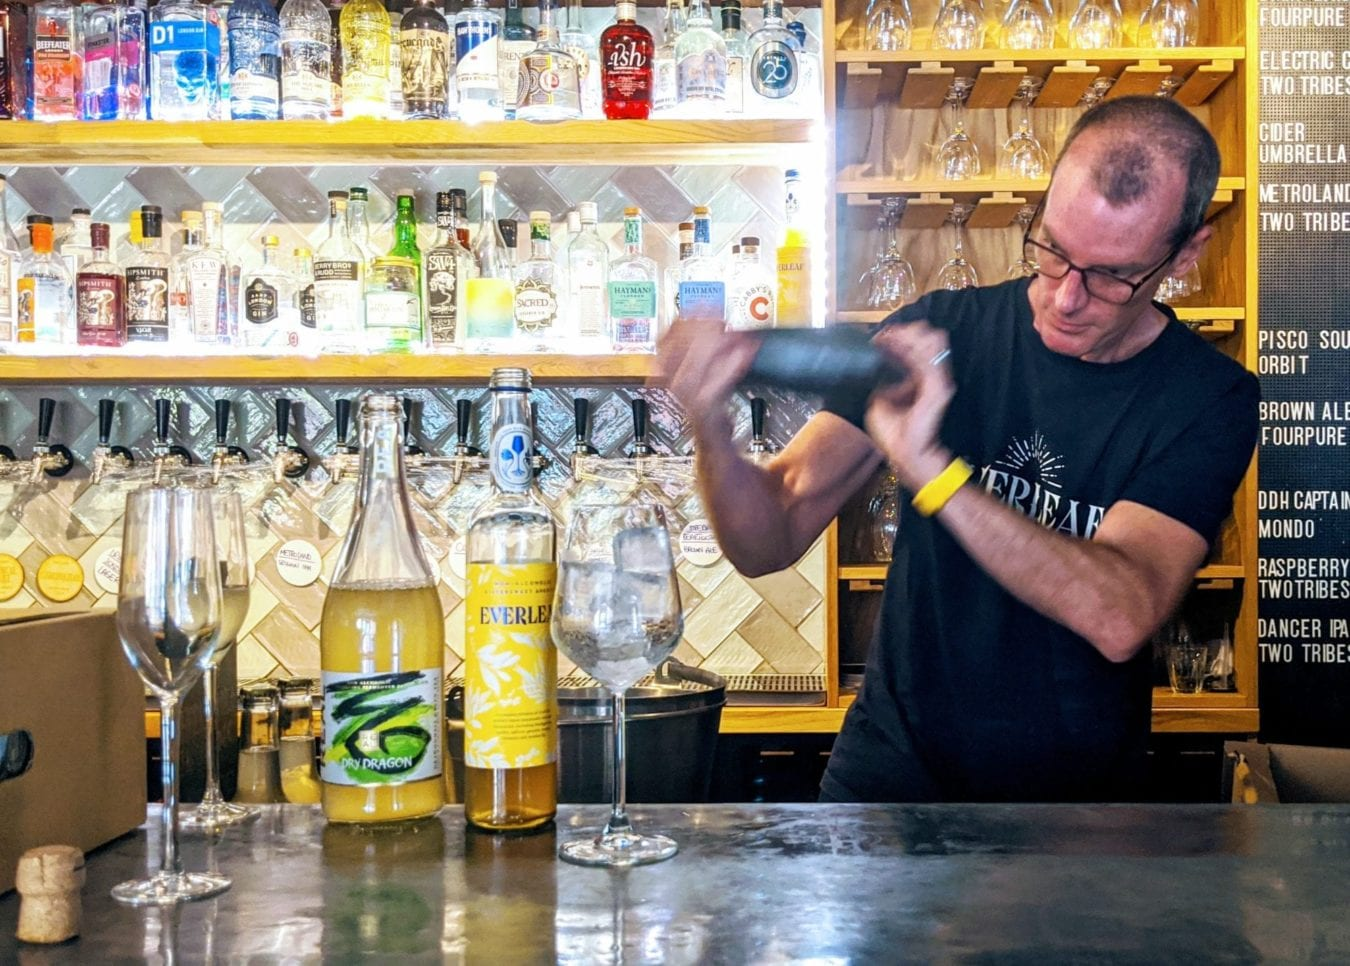 The Everleaf Interview: Founding a Drinks Brand at a Kitchen Table